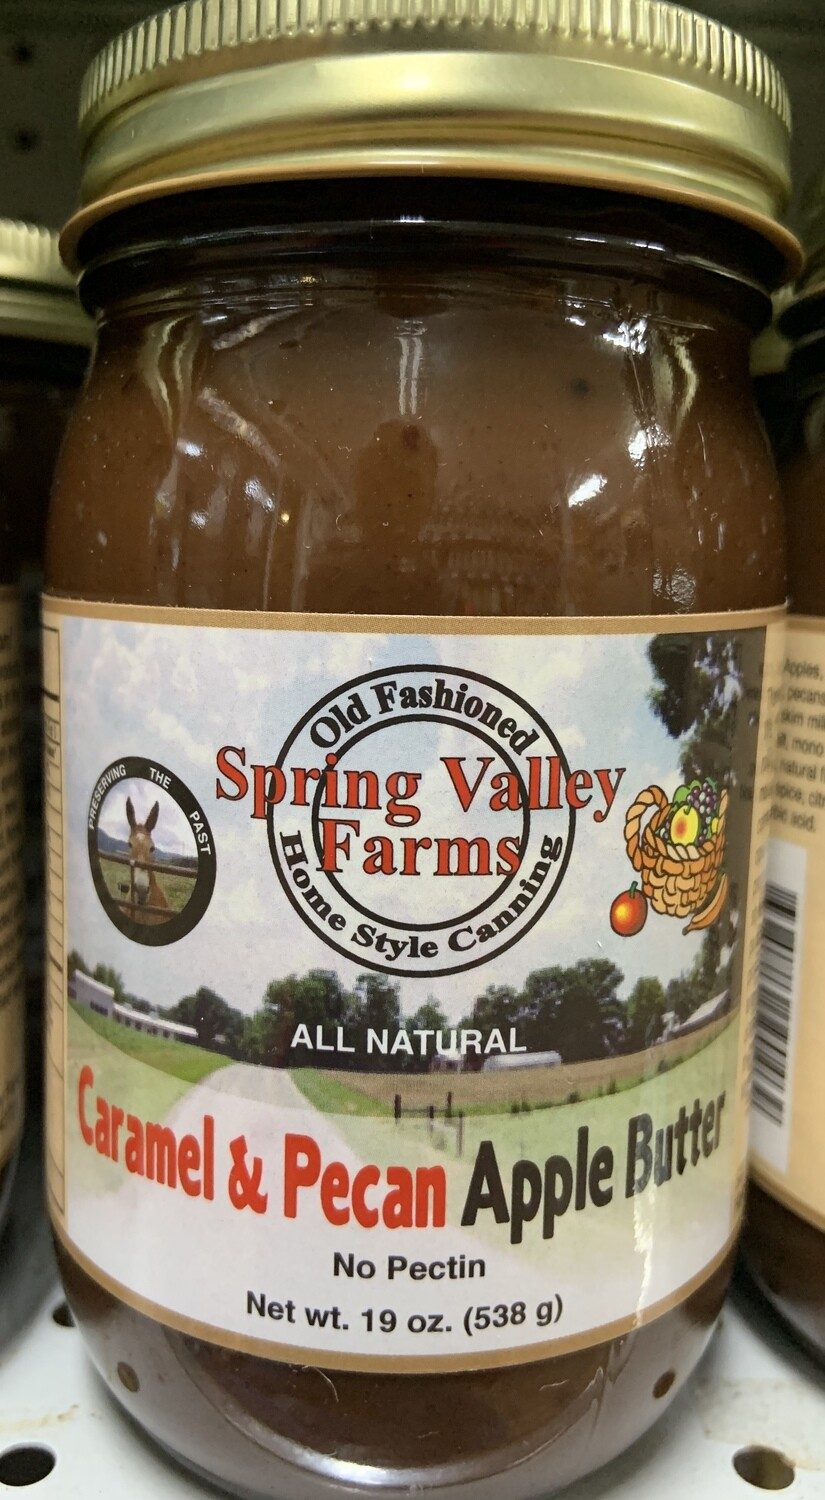 Spring Valley Farms Caramel & Pecan Apple Butter 19oz